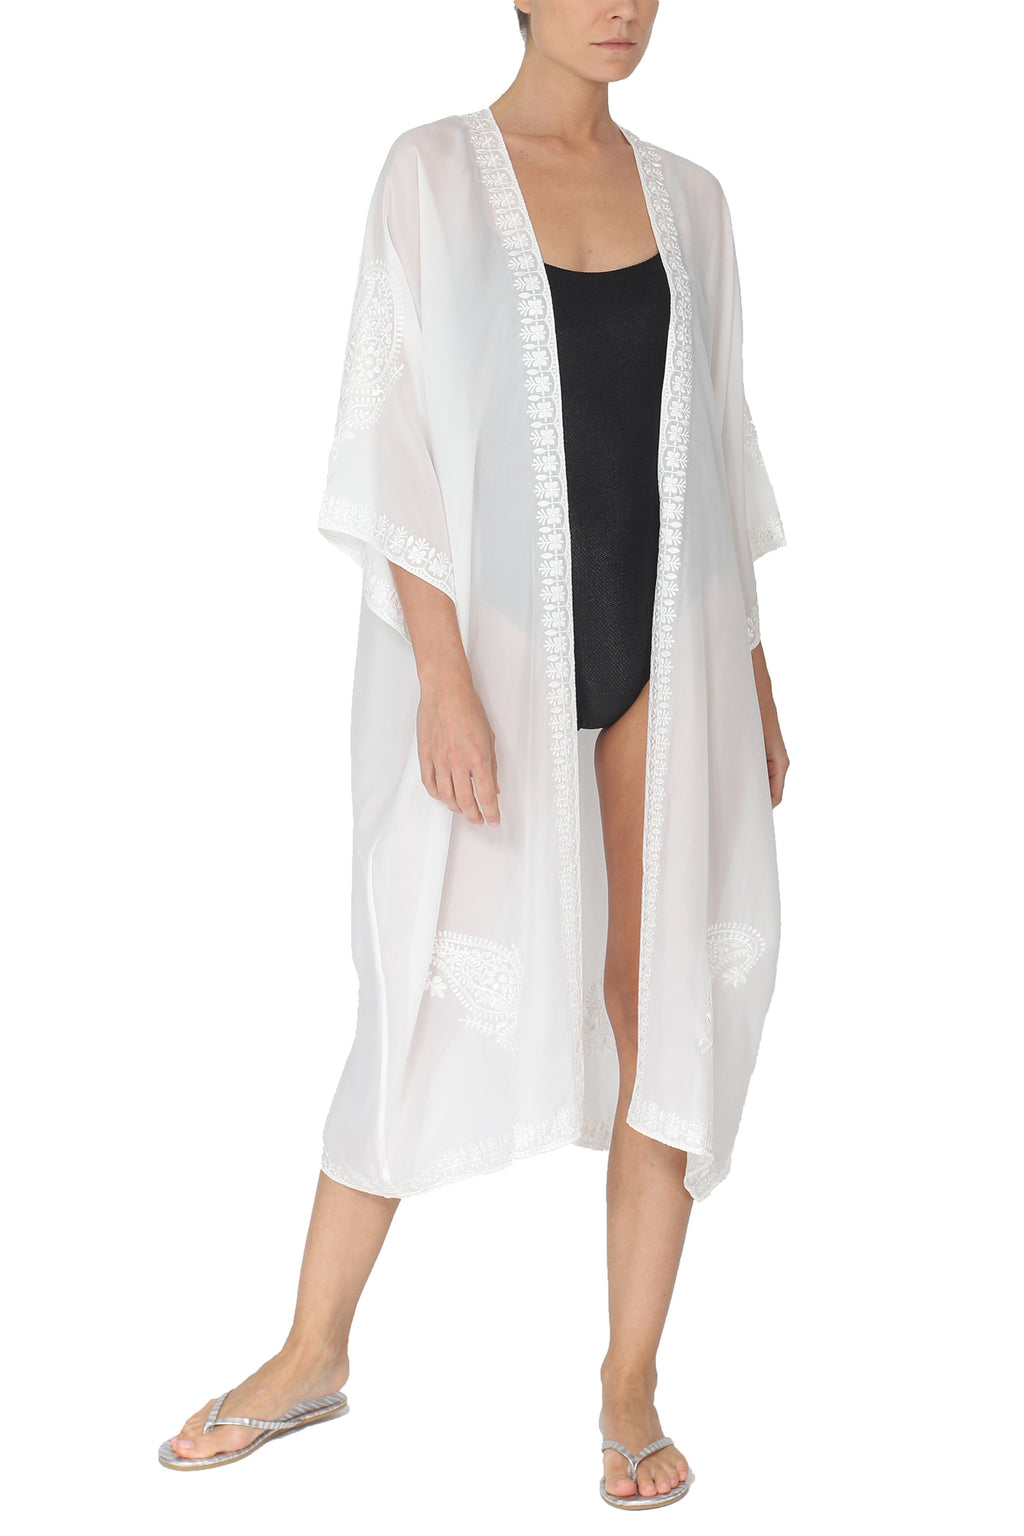 Embroidered Lurex Babani Cover Up - Marie France Van Damme